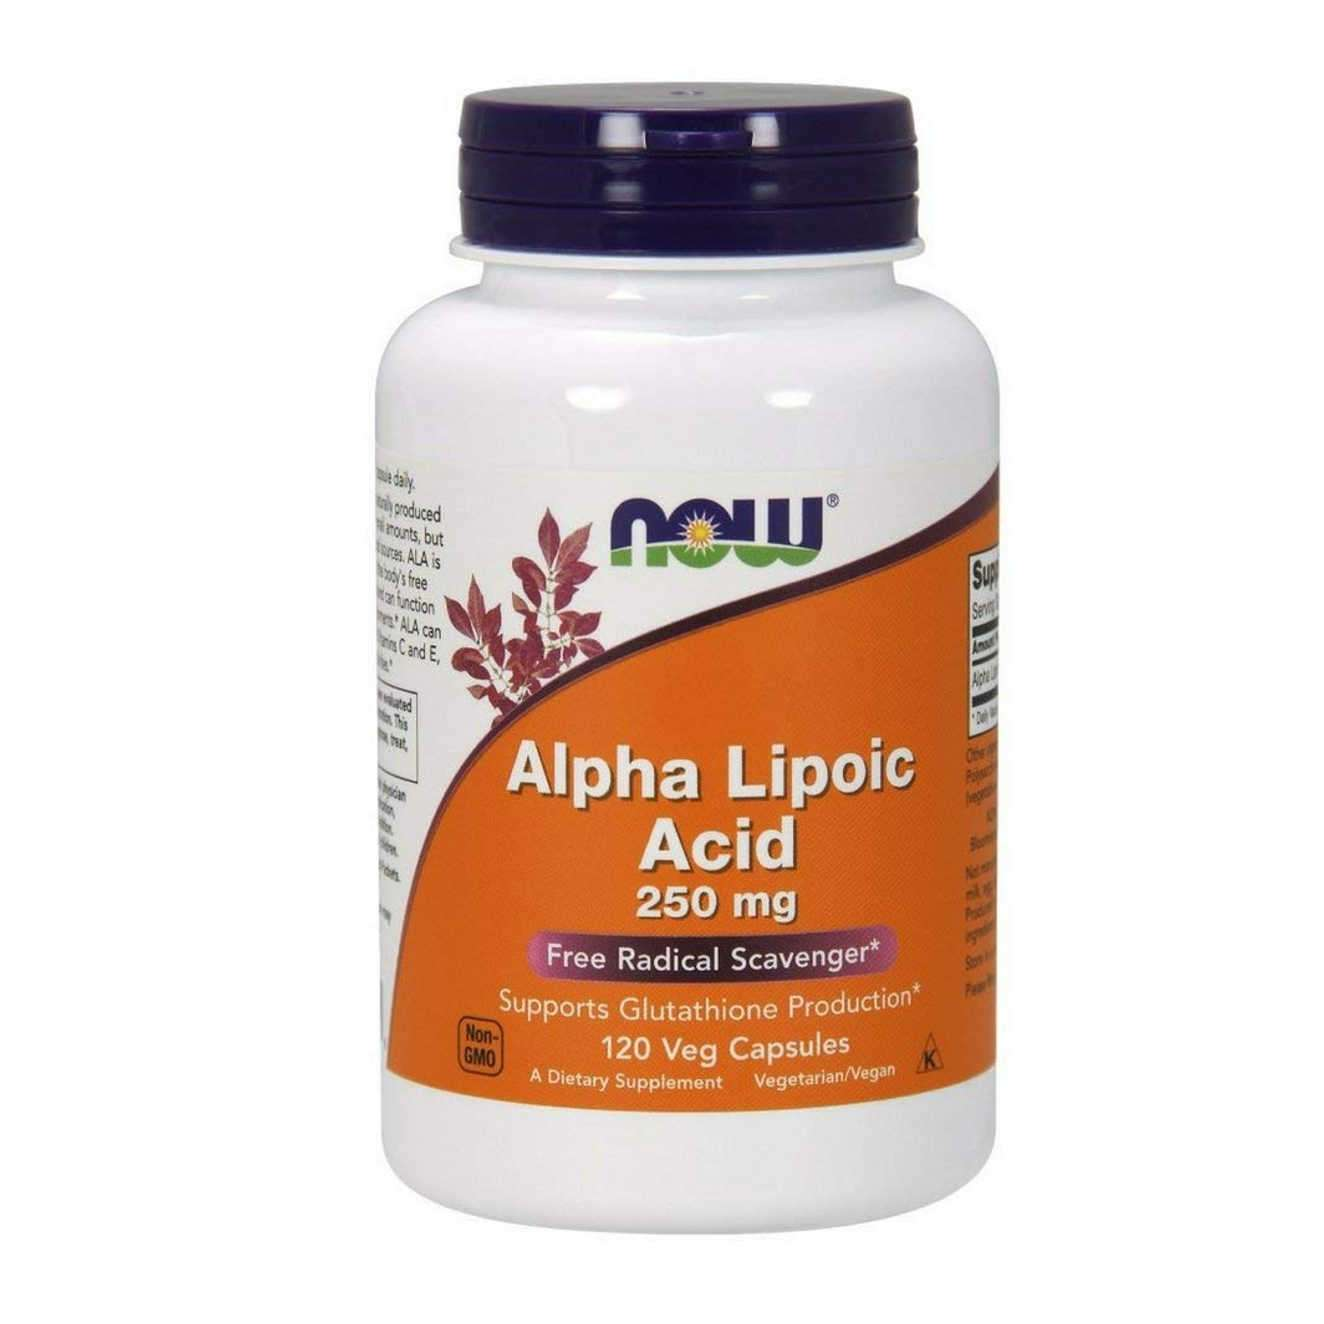 ALPHA LIPOIC ACID 250mg - 120 veg caps